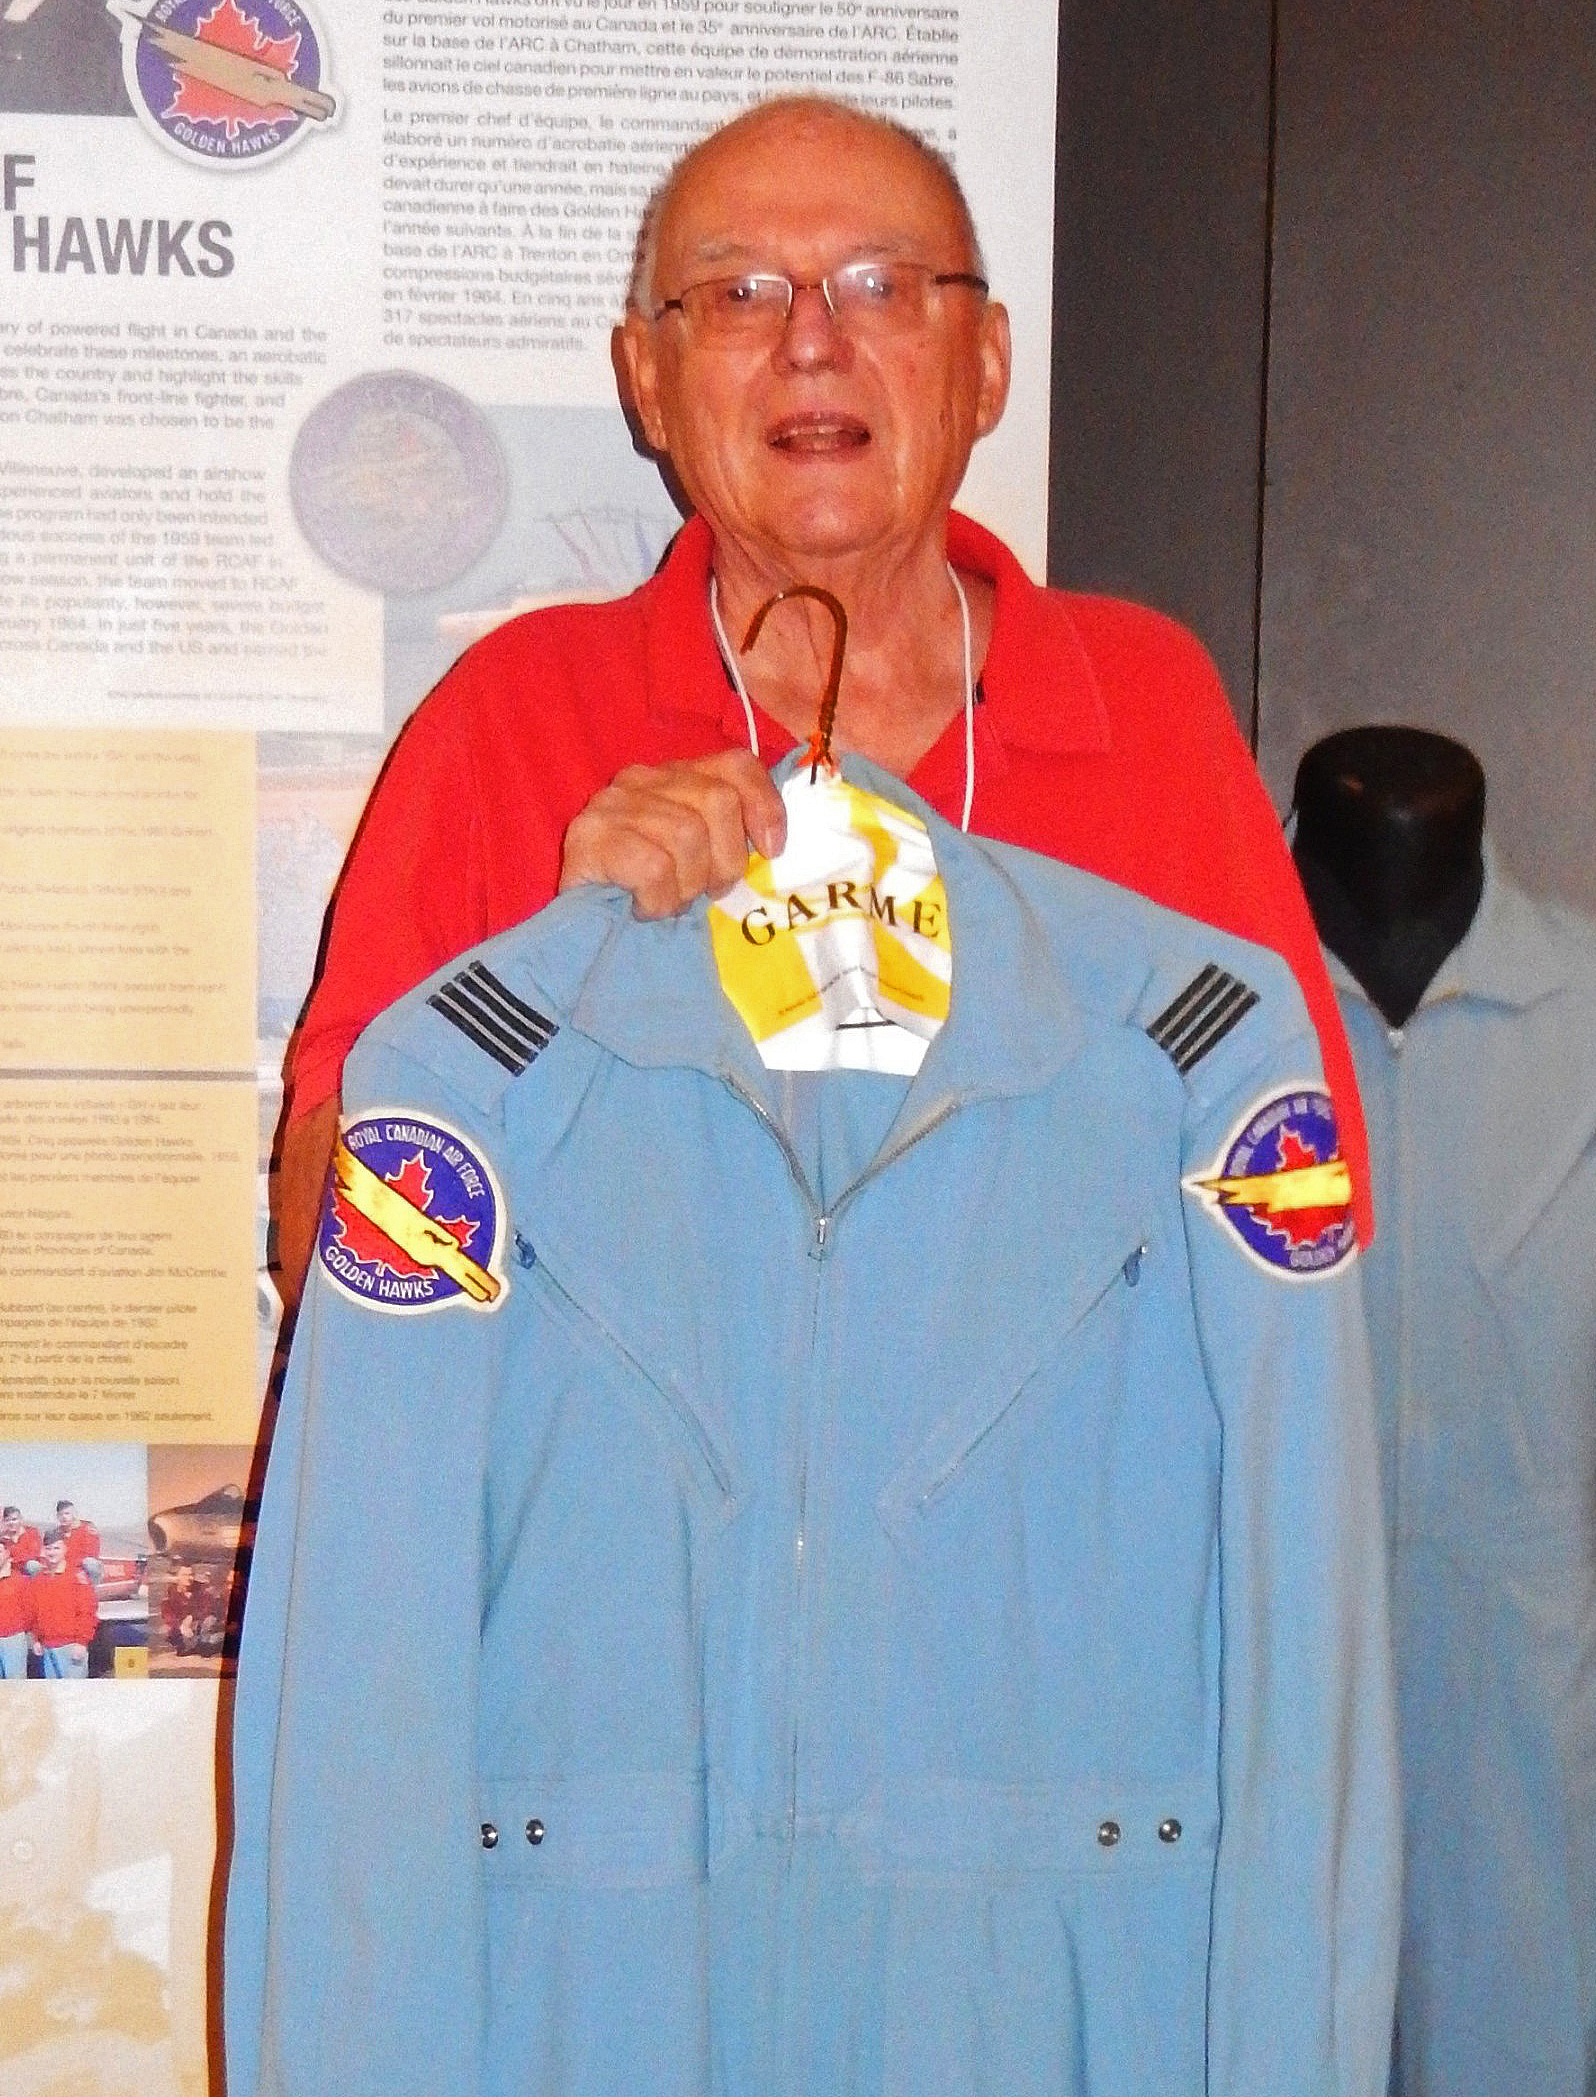 "Fifty-four years after he flew as a Golden Hawks pilot, former Flight Lieutenant Ed McKeogh donated his flying suit to the New Brunswick Aviation Museum at the ""Celebration of Excellence"" event honouring the Golden Hawks. PHOTO: John Chalmers"